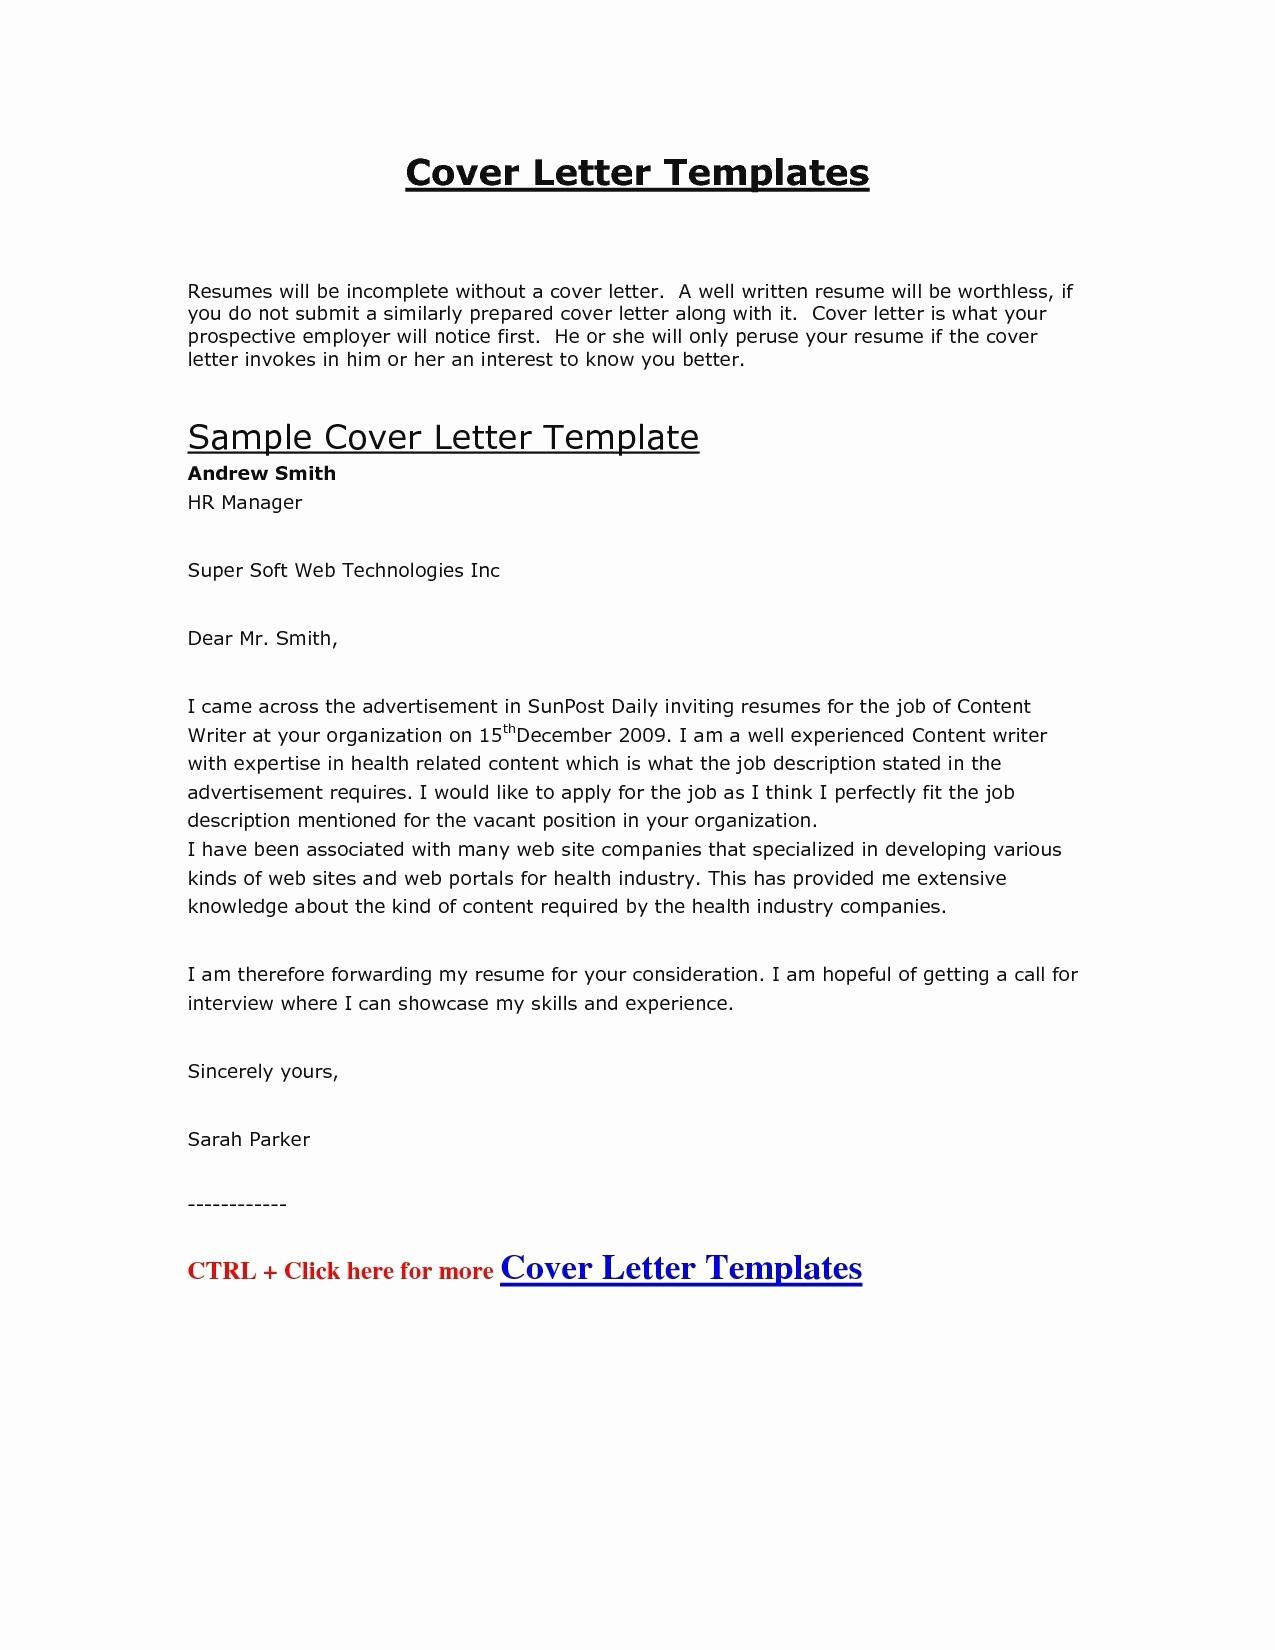 Application Letter Template - Resume Templates Poppycockreviews